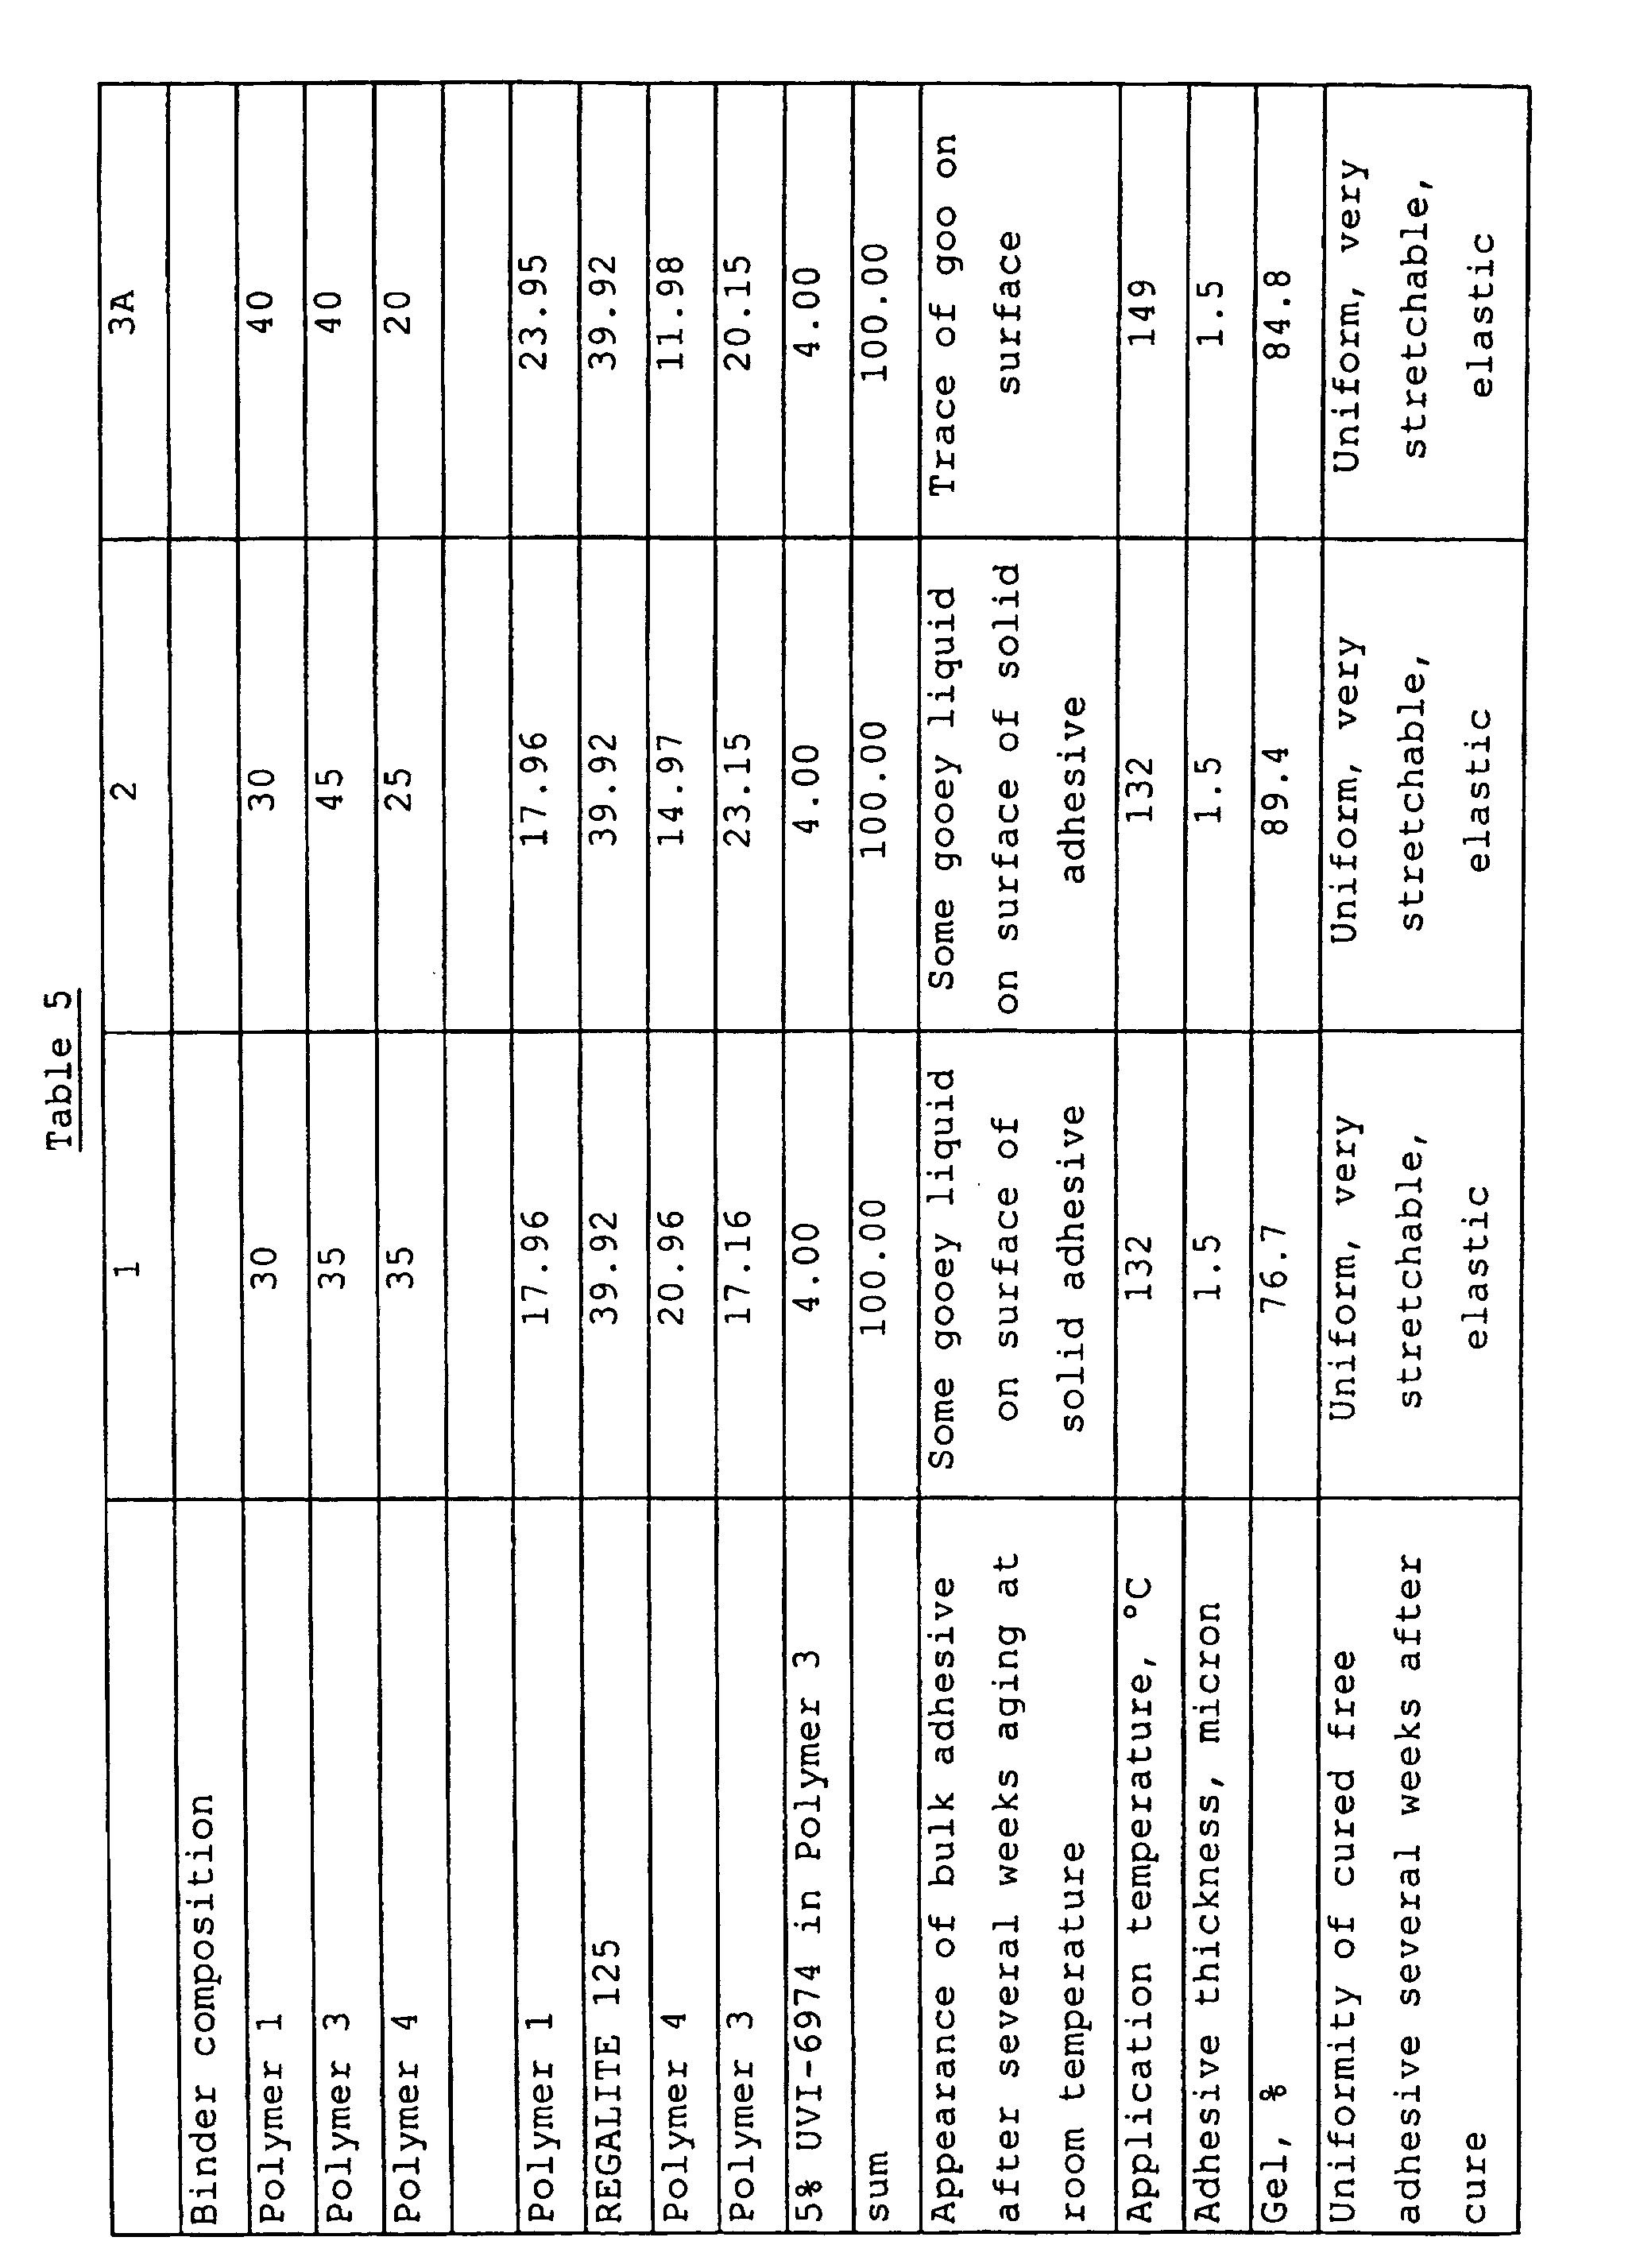 EP1222229B1 - Formulation for strippable adhesive and coating films